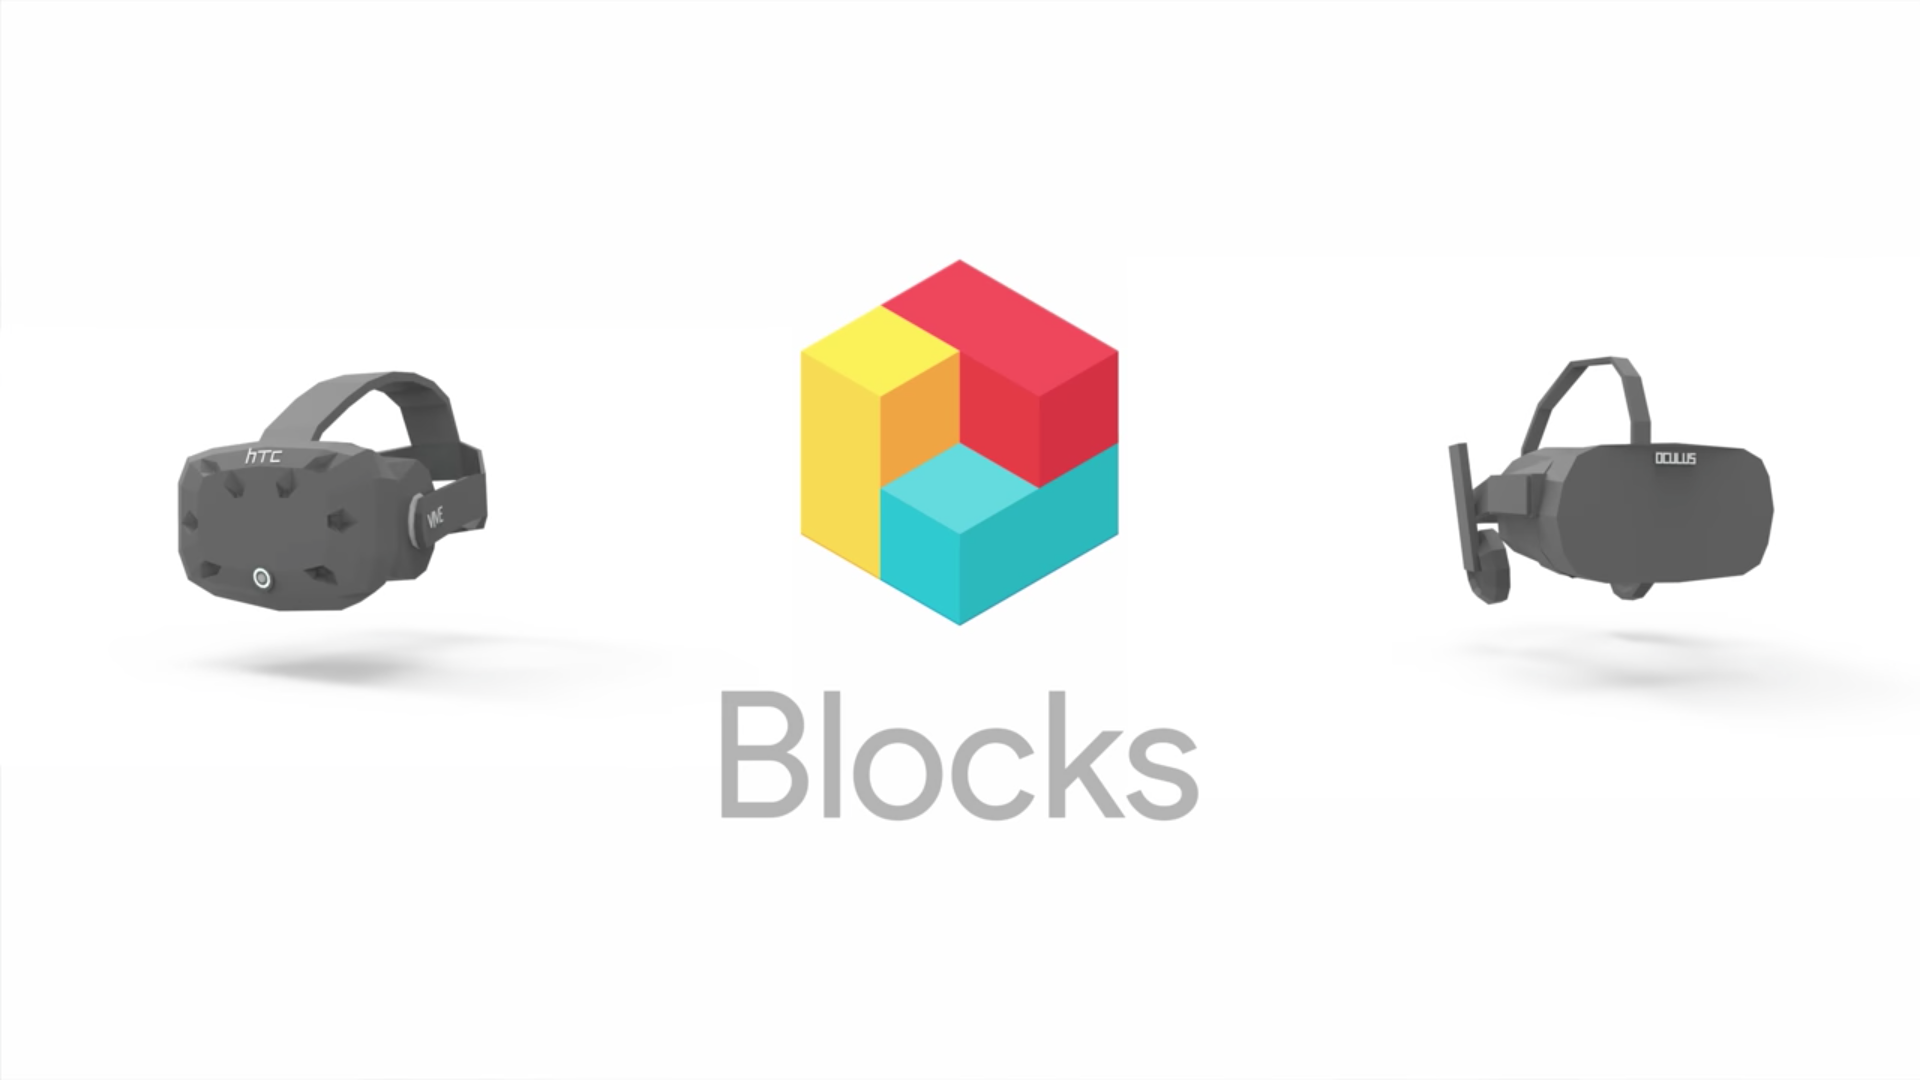 Google restructures Computer Graphics with a Virtual Reality program titled Blocks